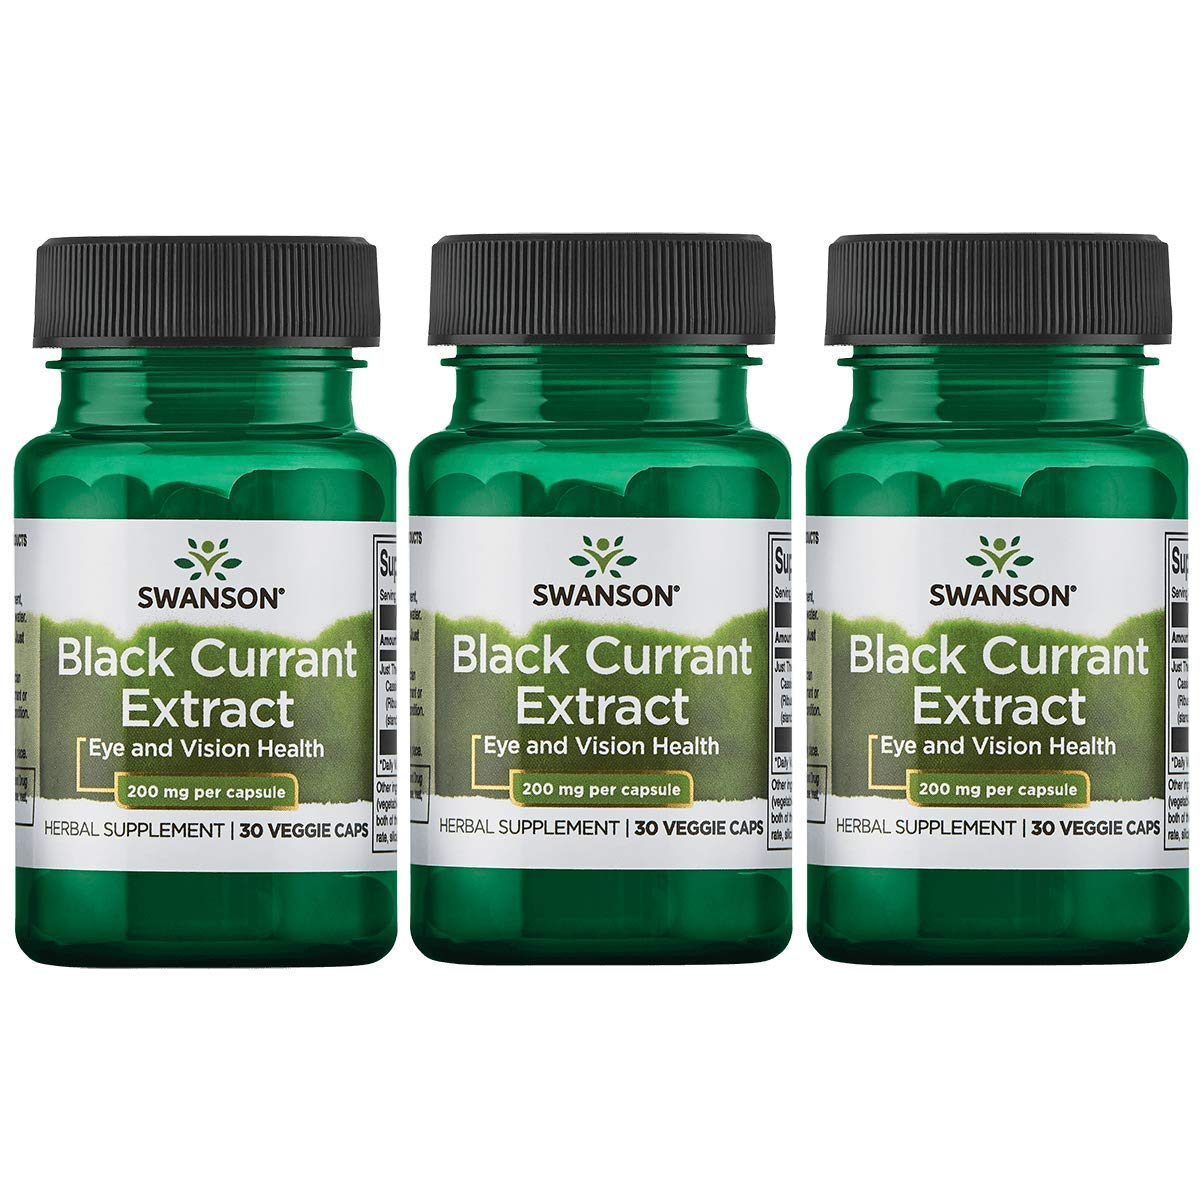 Swanson Black Currant Extract 200 mg 30 Veg Caps 3 Pack